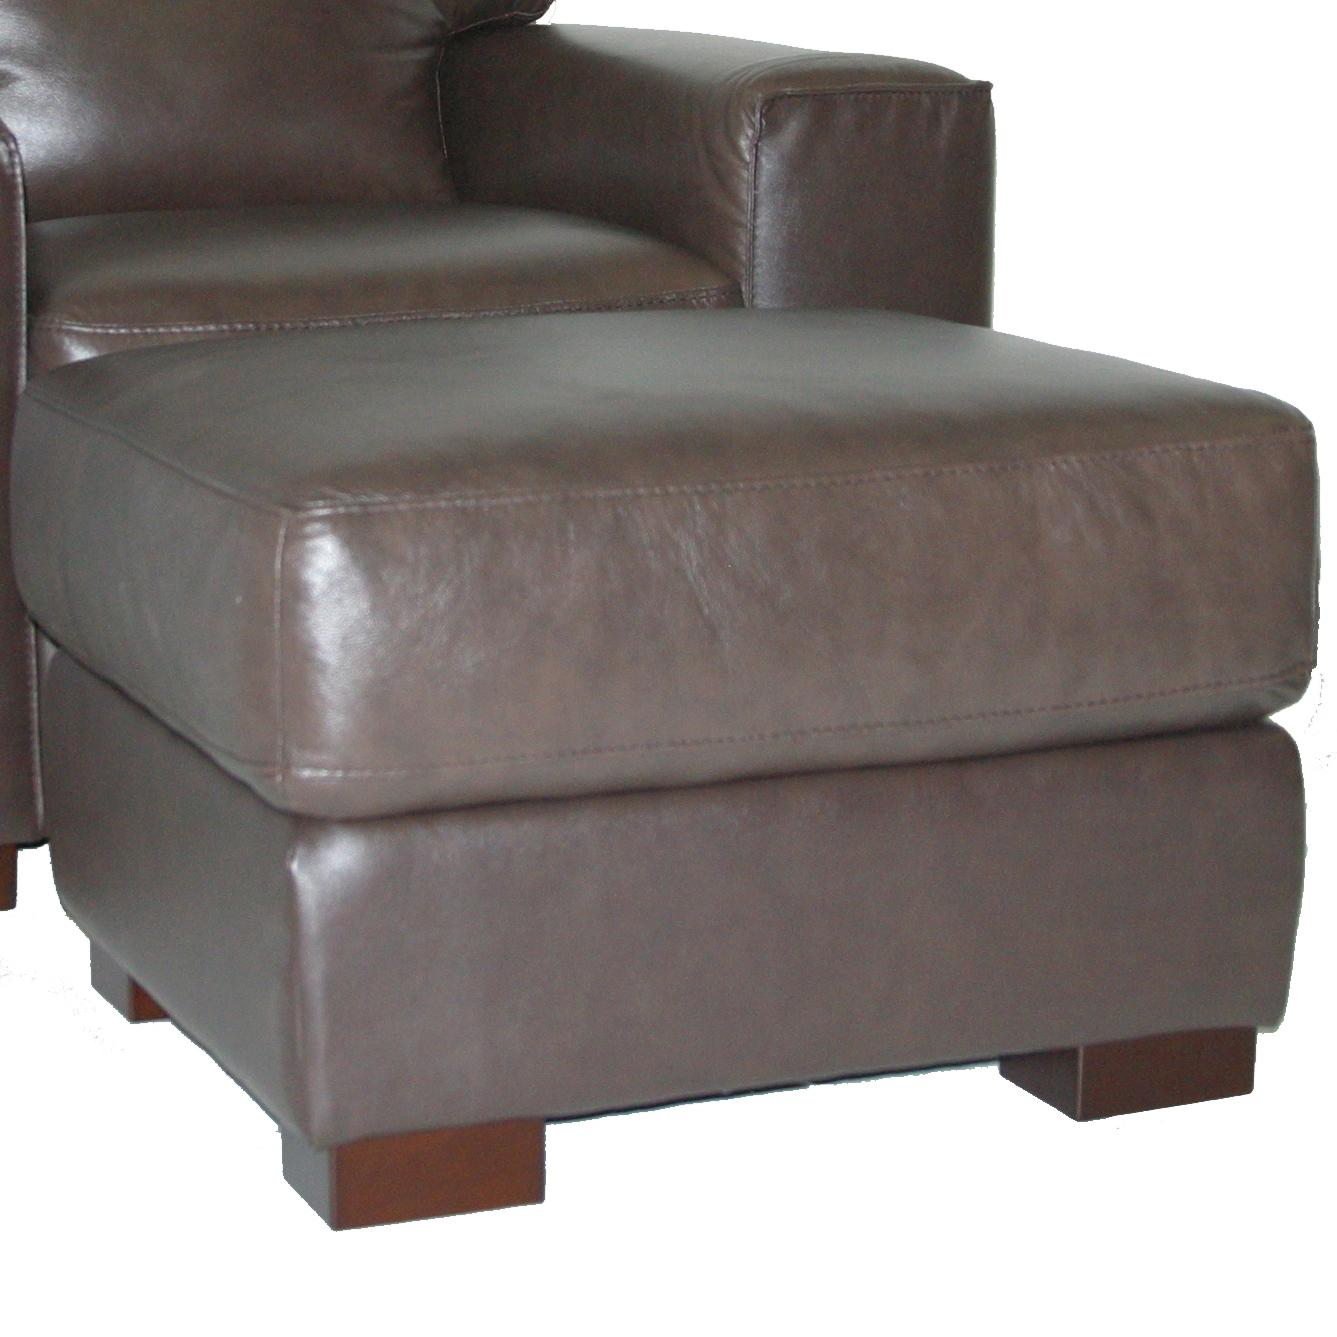 30480 Ottoman by Violino at Furniture Superstore - Rochester, MN